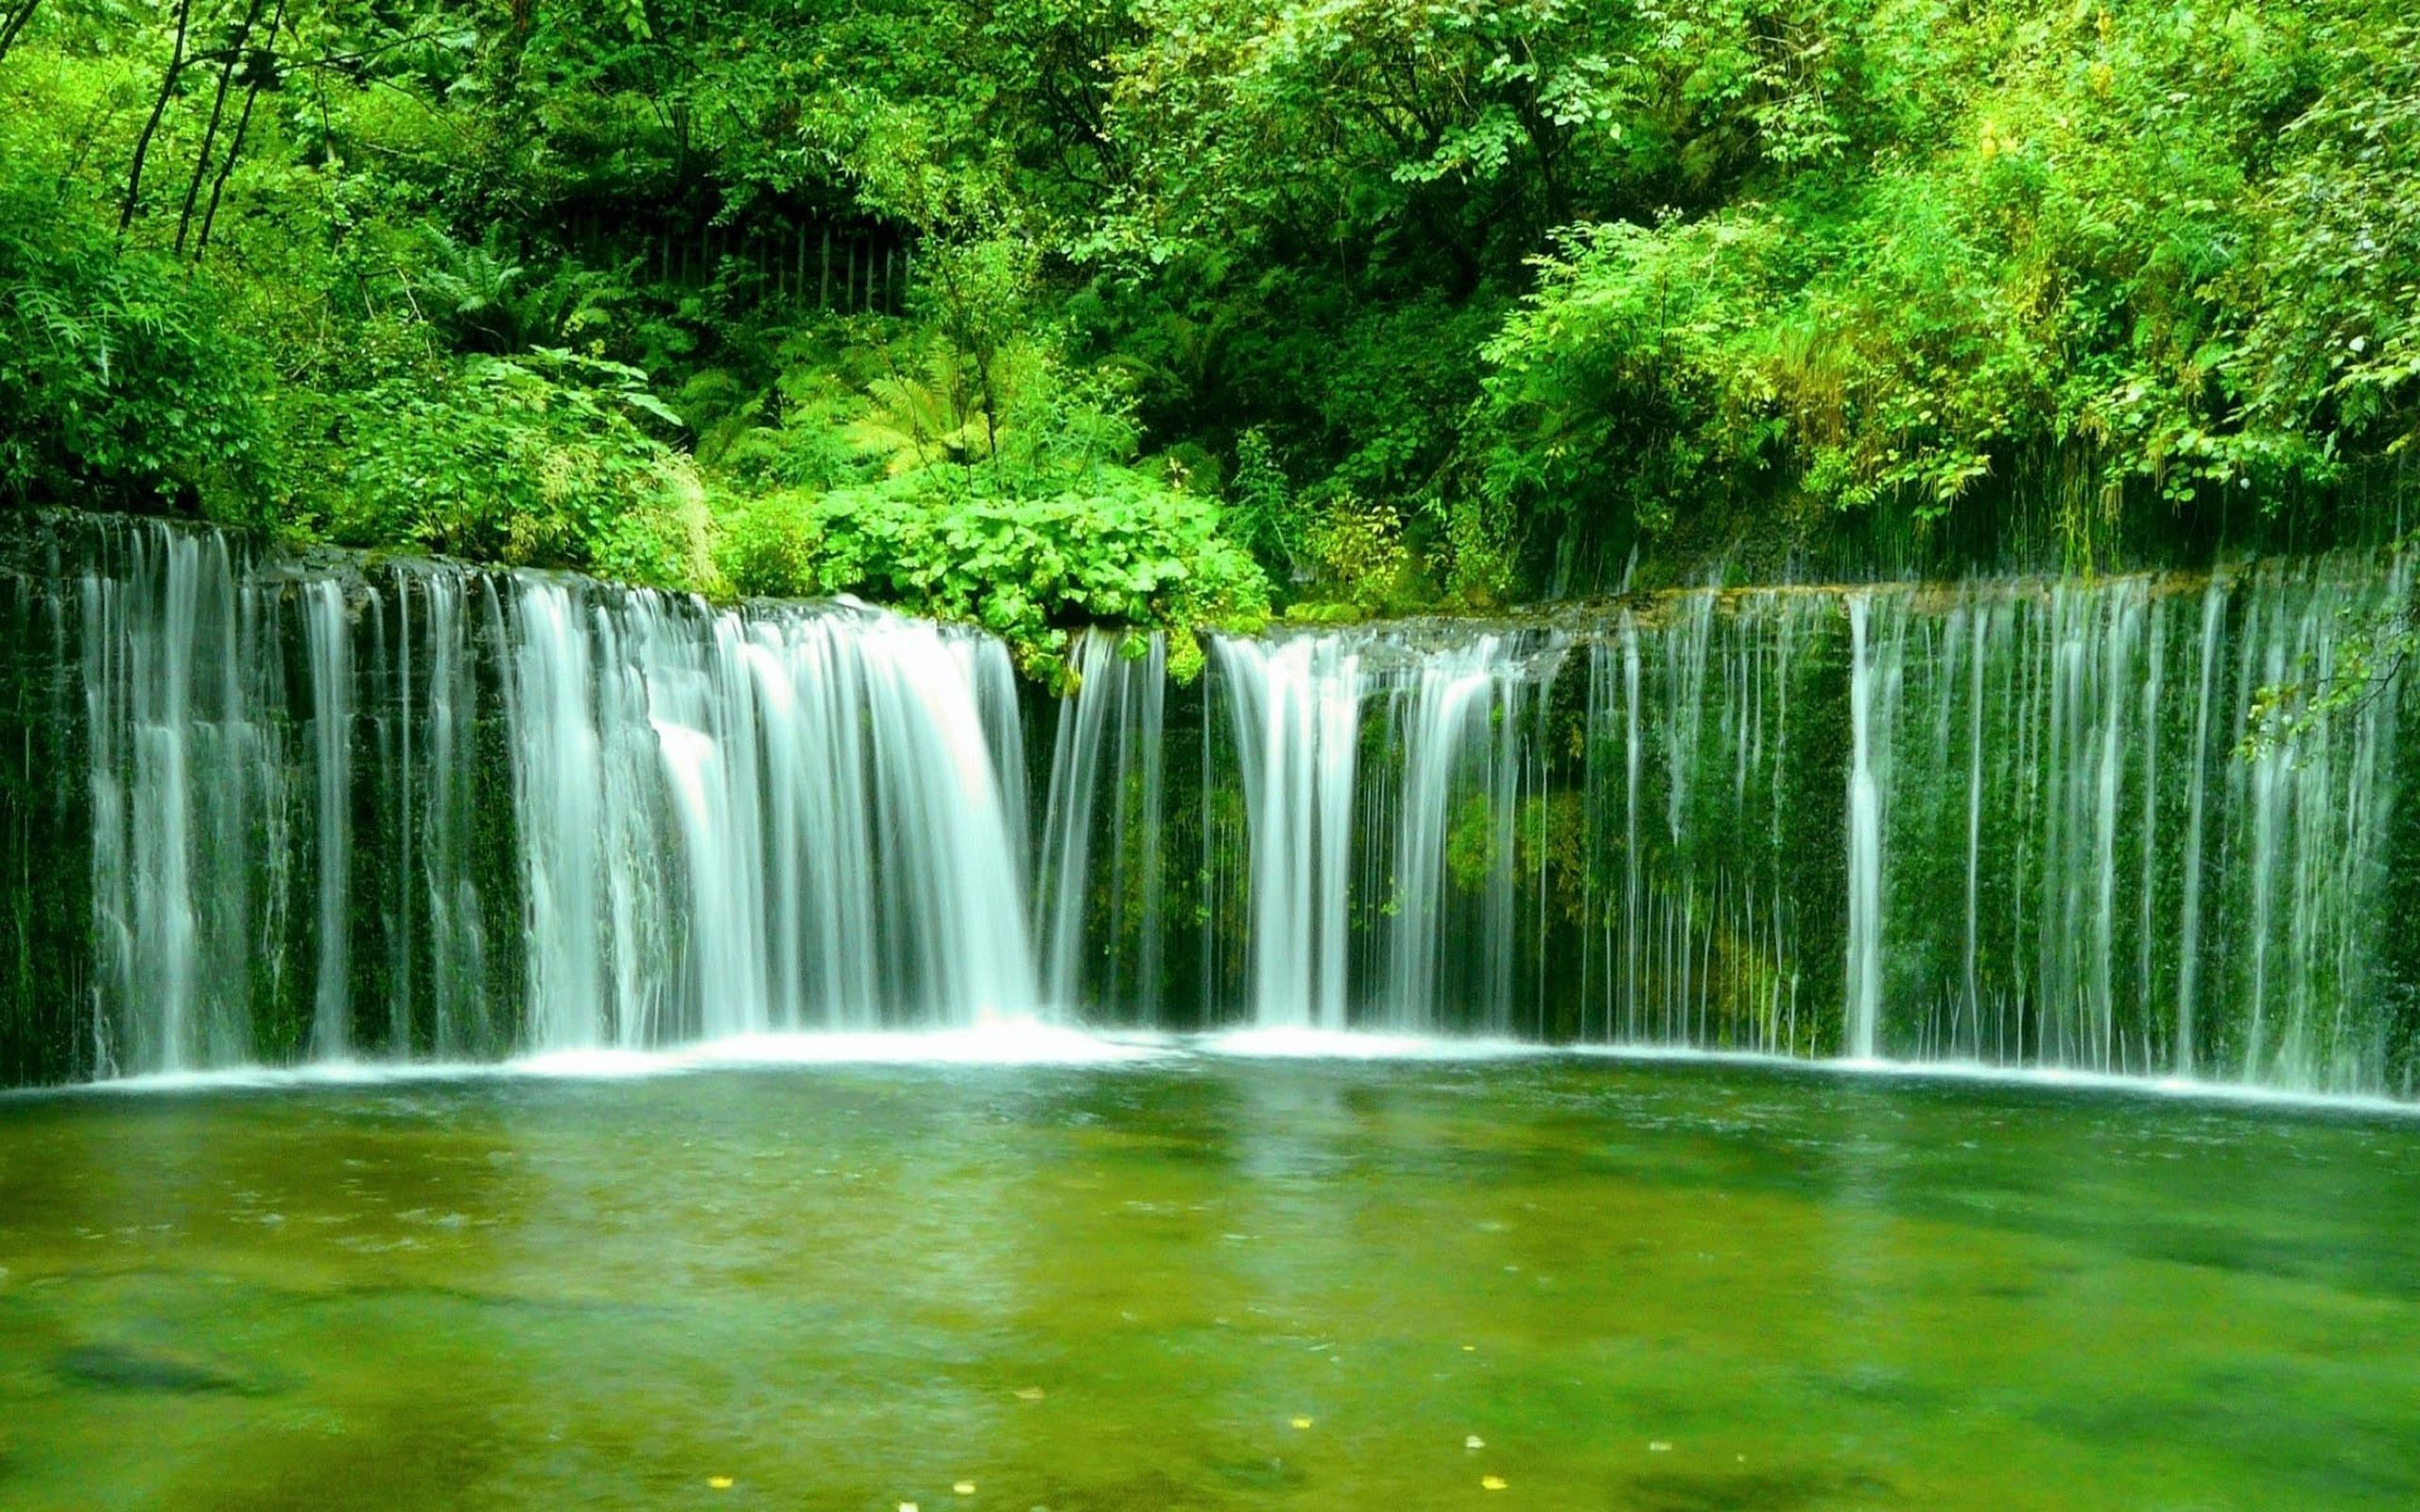 Free Nature Wallpaper Download With Jungle And Waterfall Picture Thac Nước Thien Nhien Hinh Nền